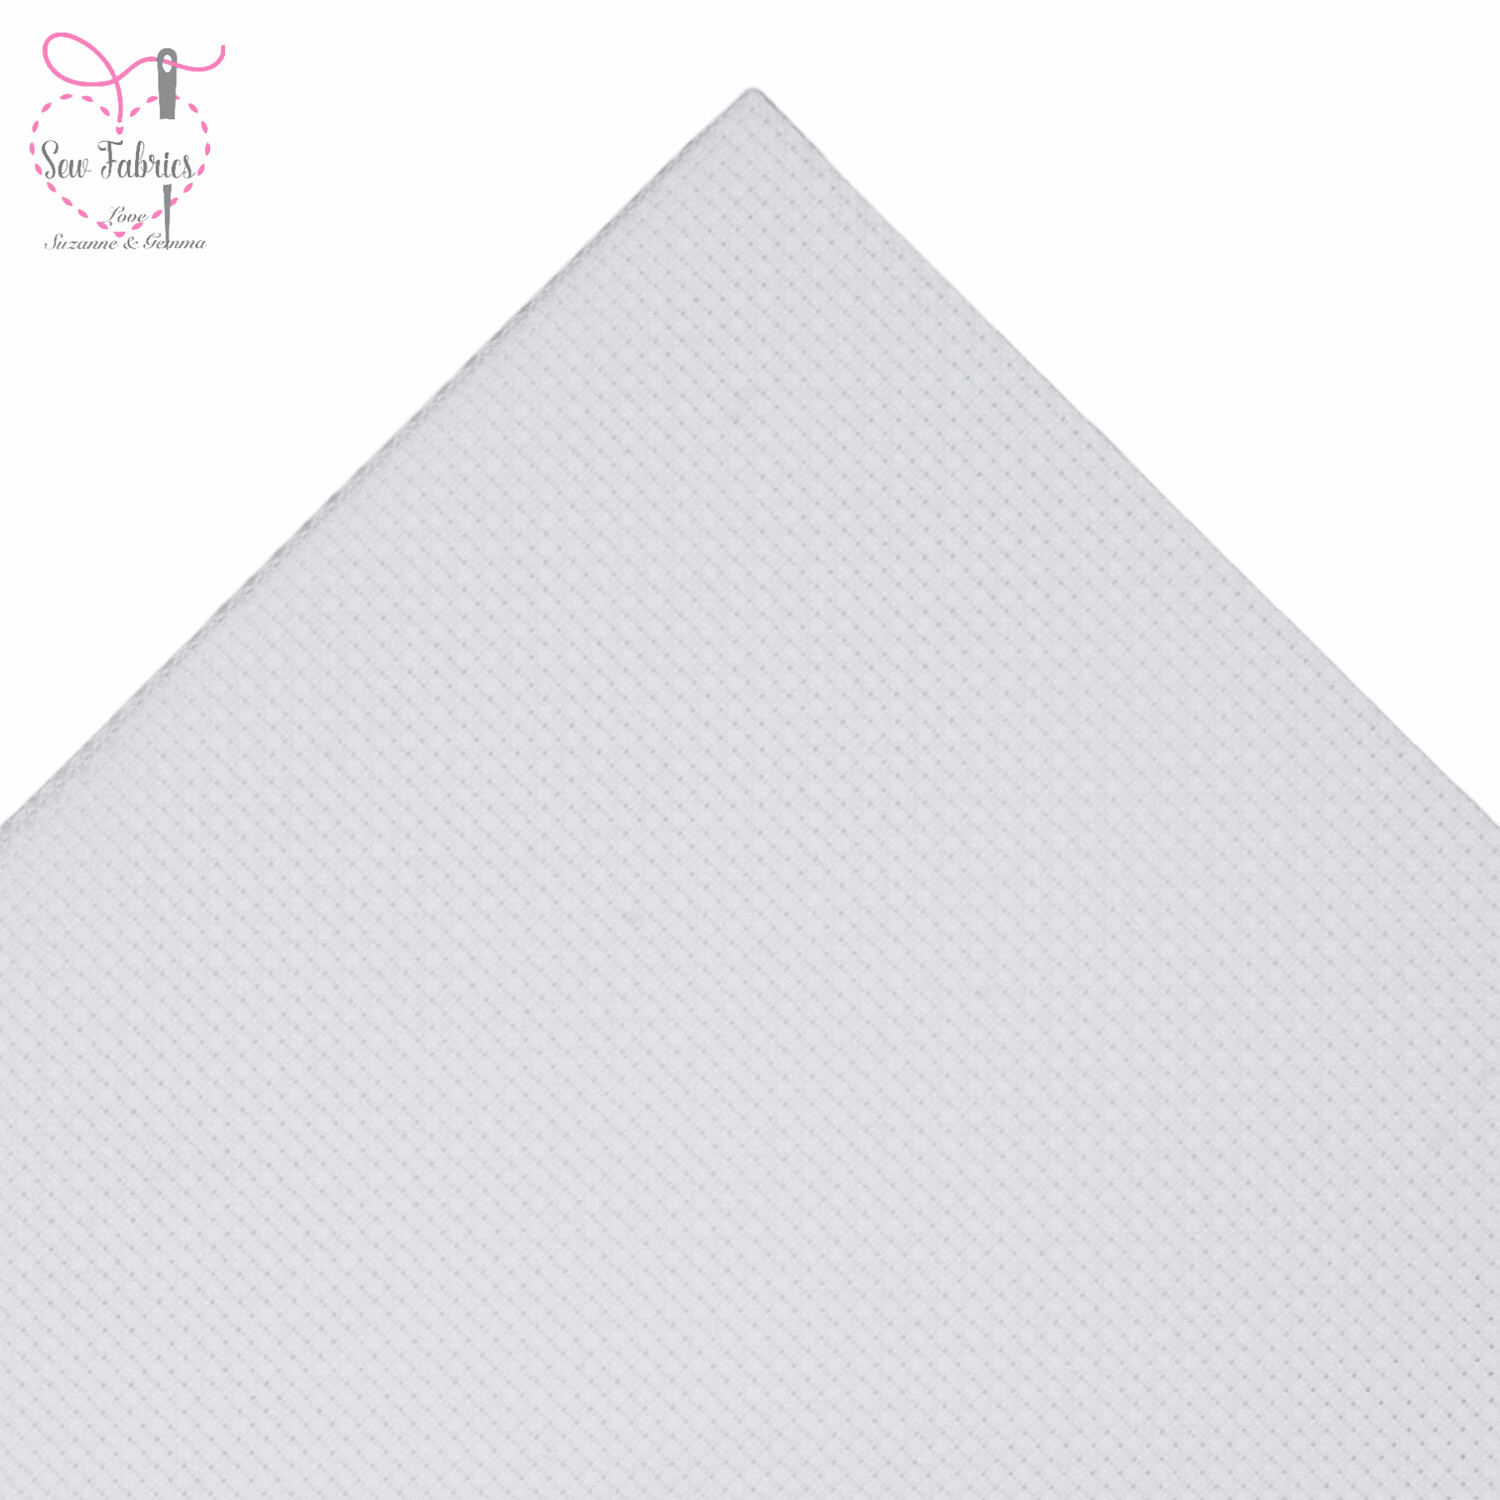 """14 Count/HPI Cross Stitch Aida Sheets White (10"""" x 14""""/25cm x 35cm) Pack of 5 sheets"""